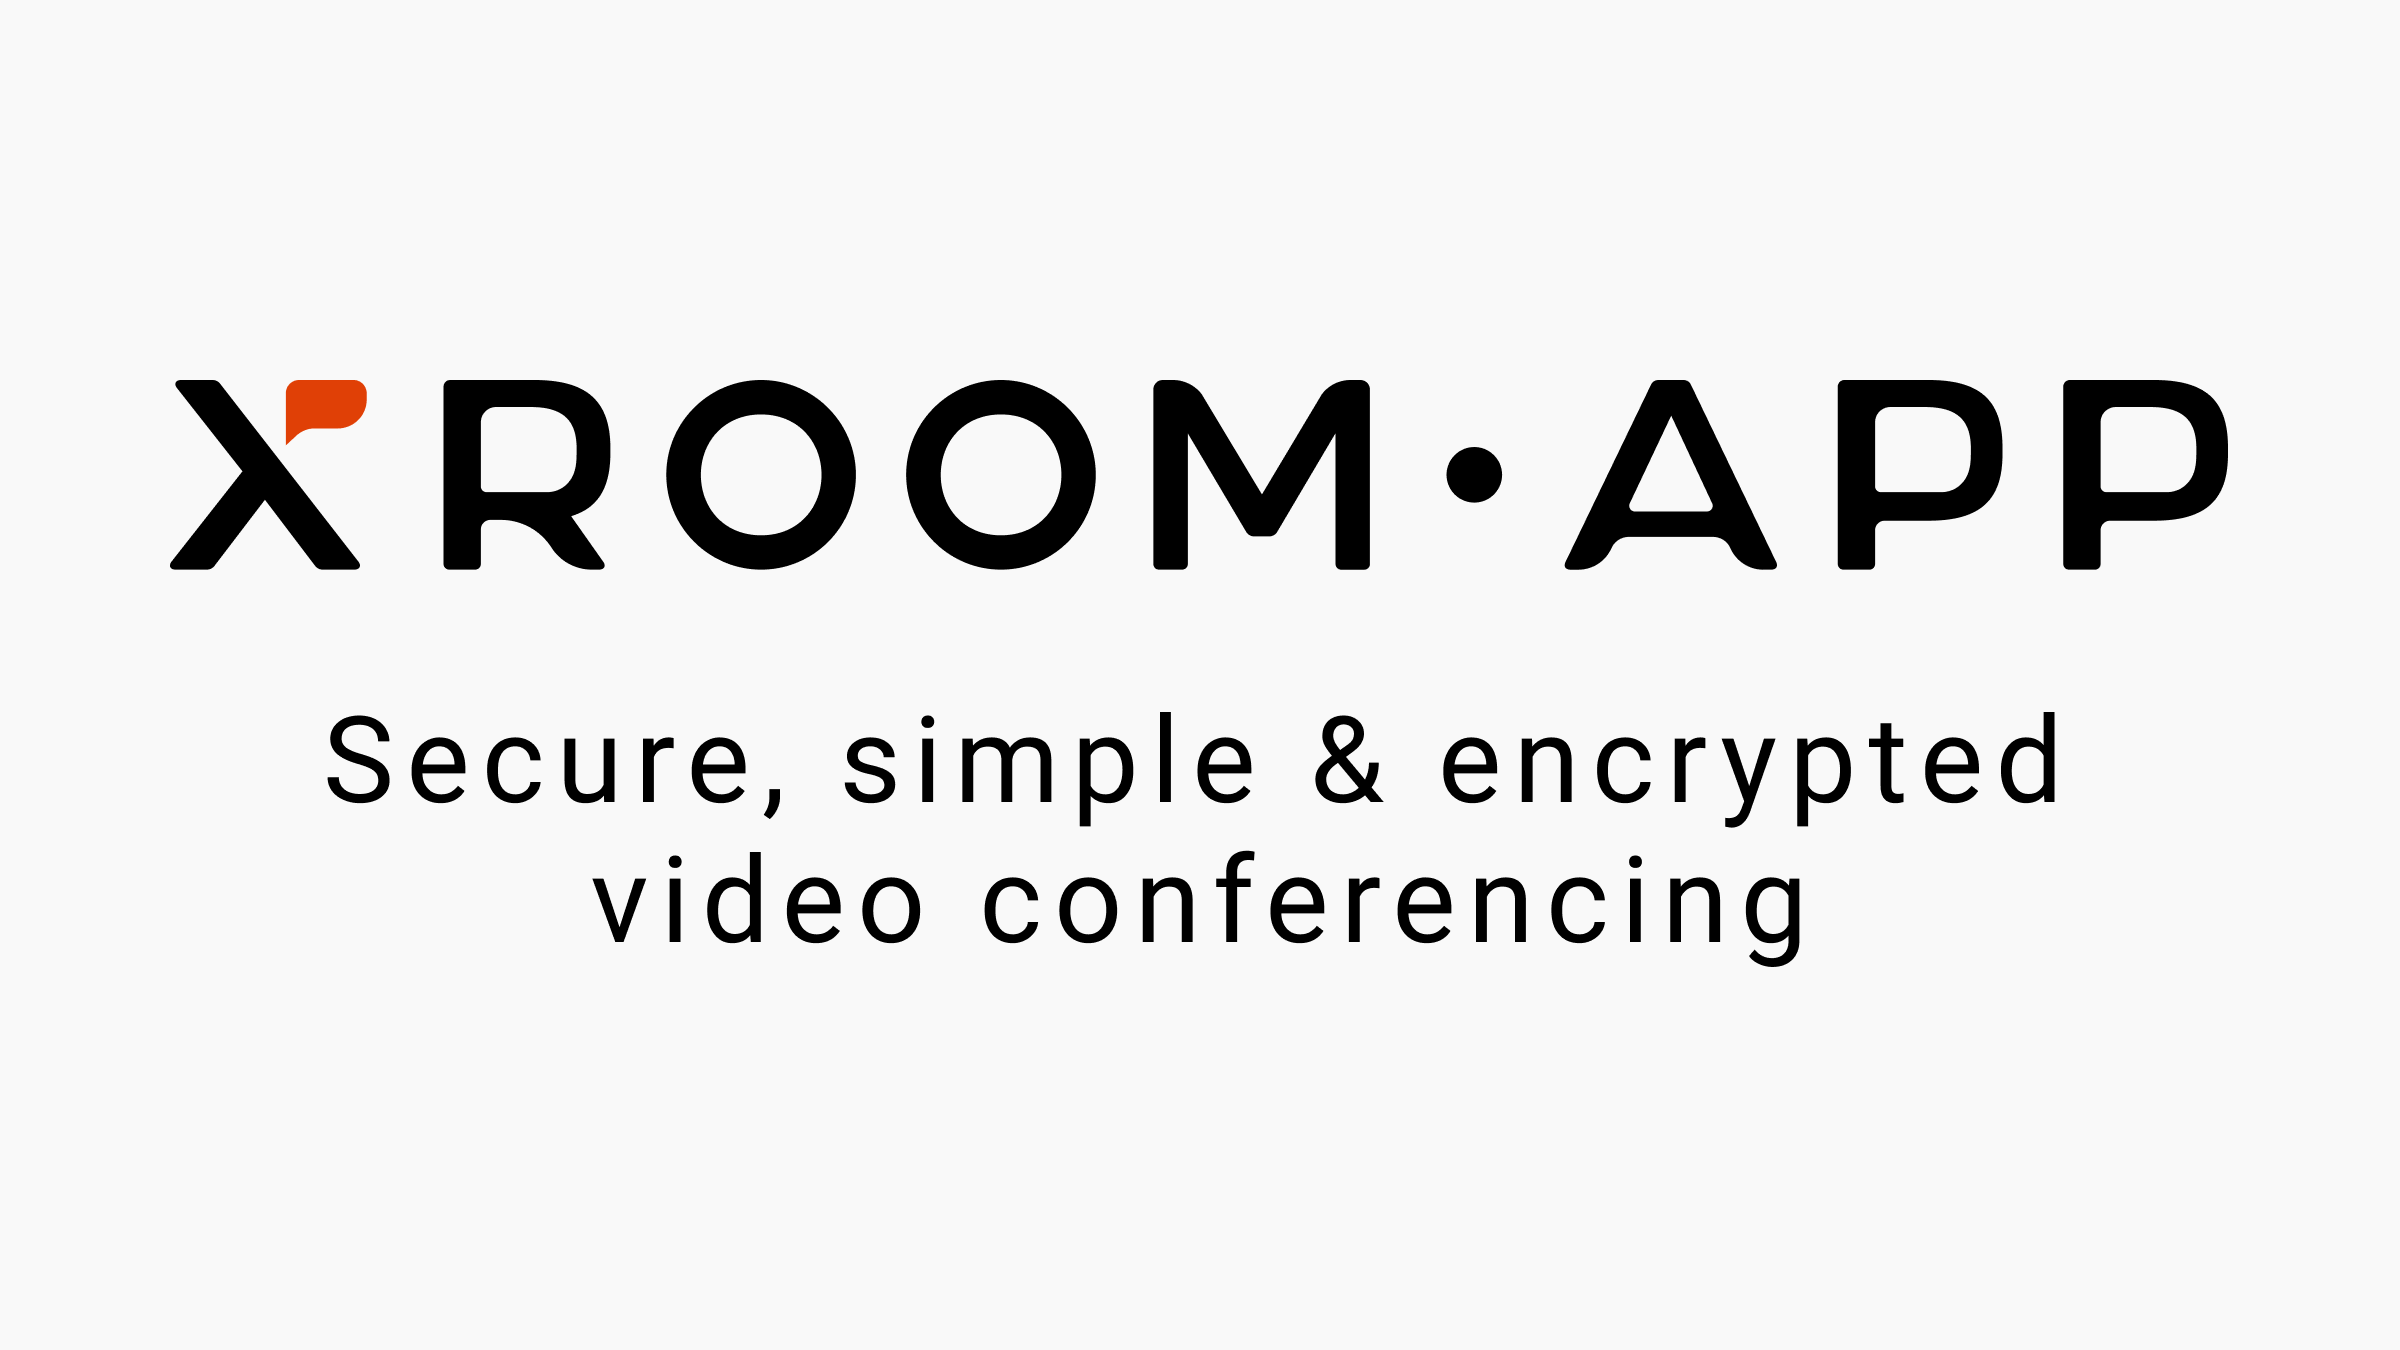 Secure, simple and encrypted video conferencing